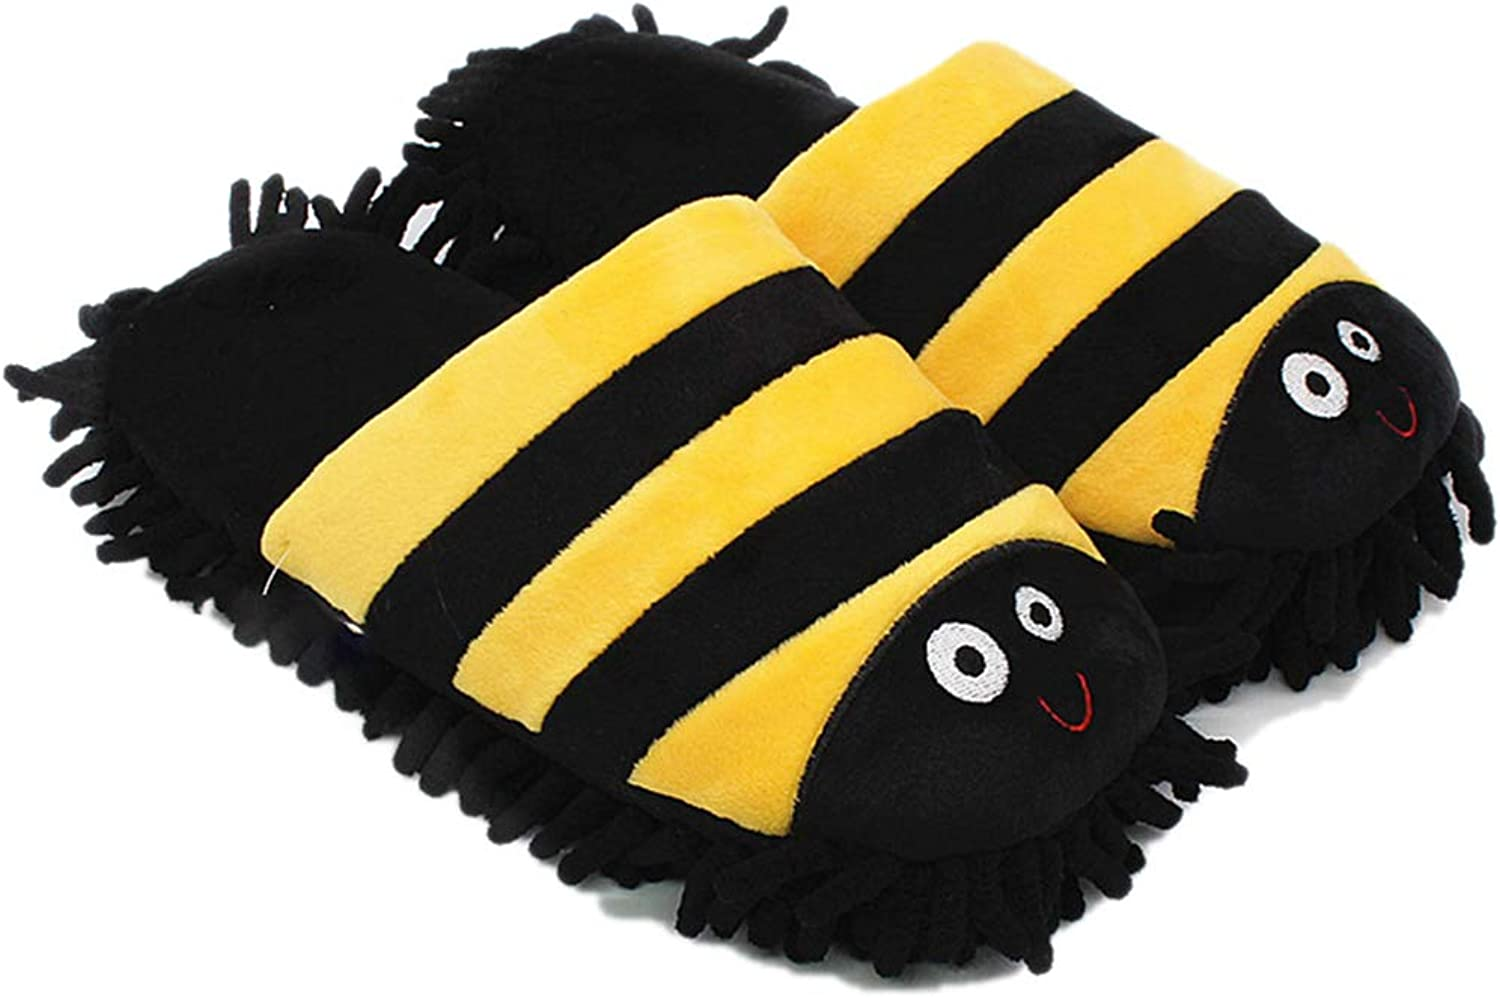 Nafanio Home Plush Slippers Warm Winter Cute Cartoon Indoor Floor Mop shoes for Guests Adults Girls Ladies Flats